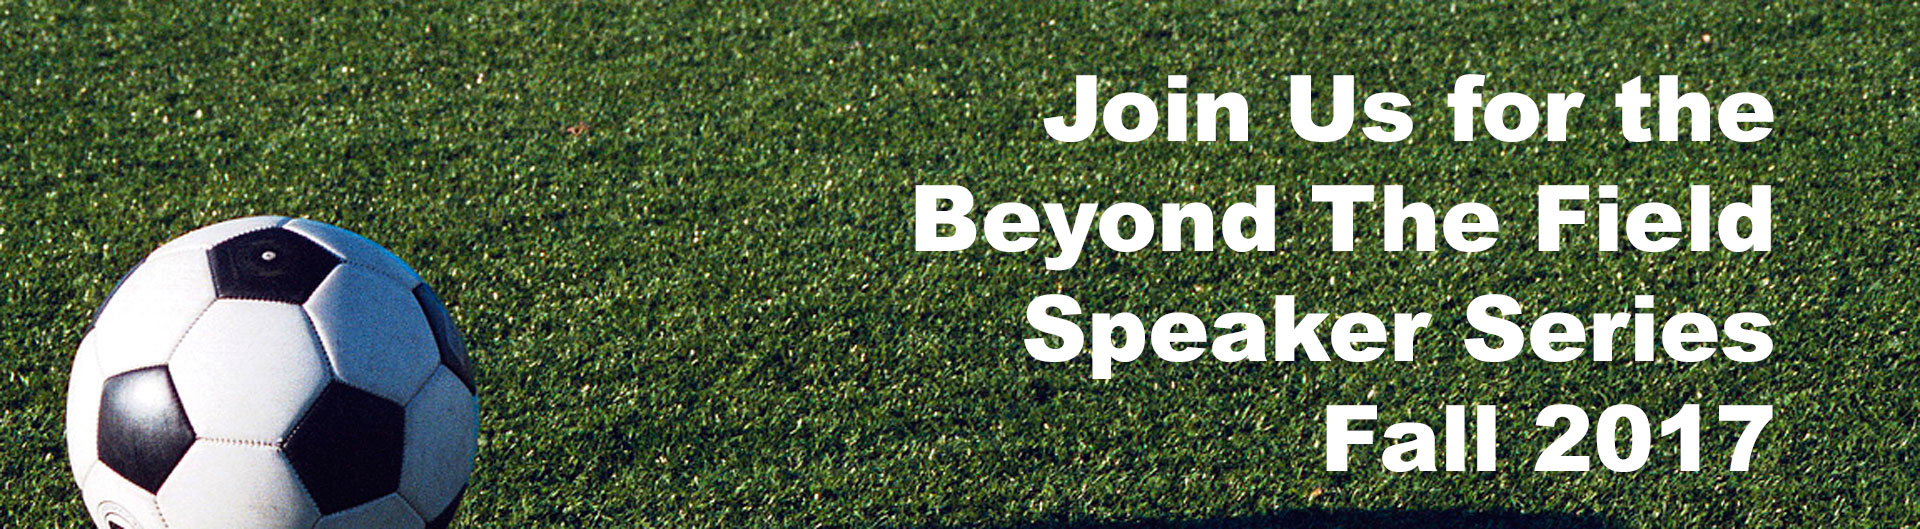 Beyond the Field Speaker Series